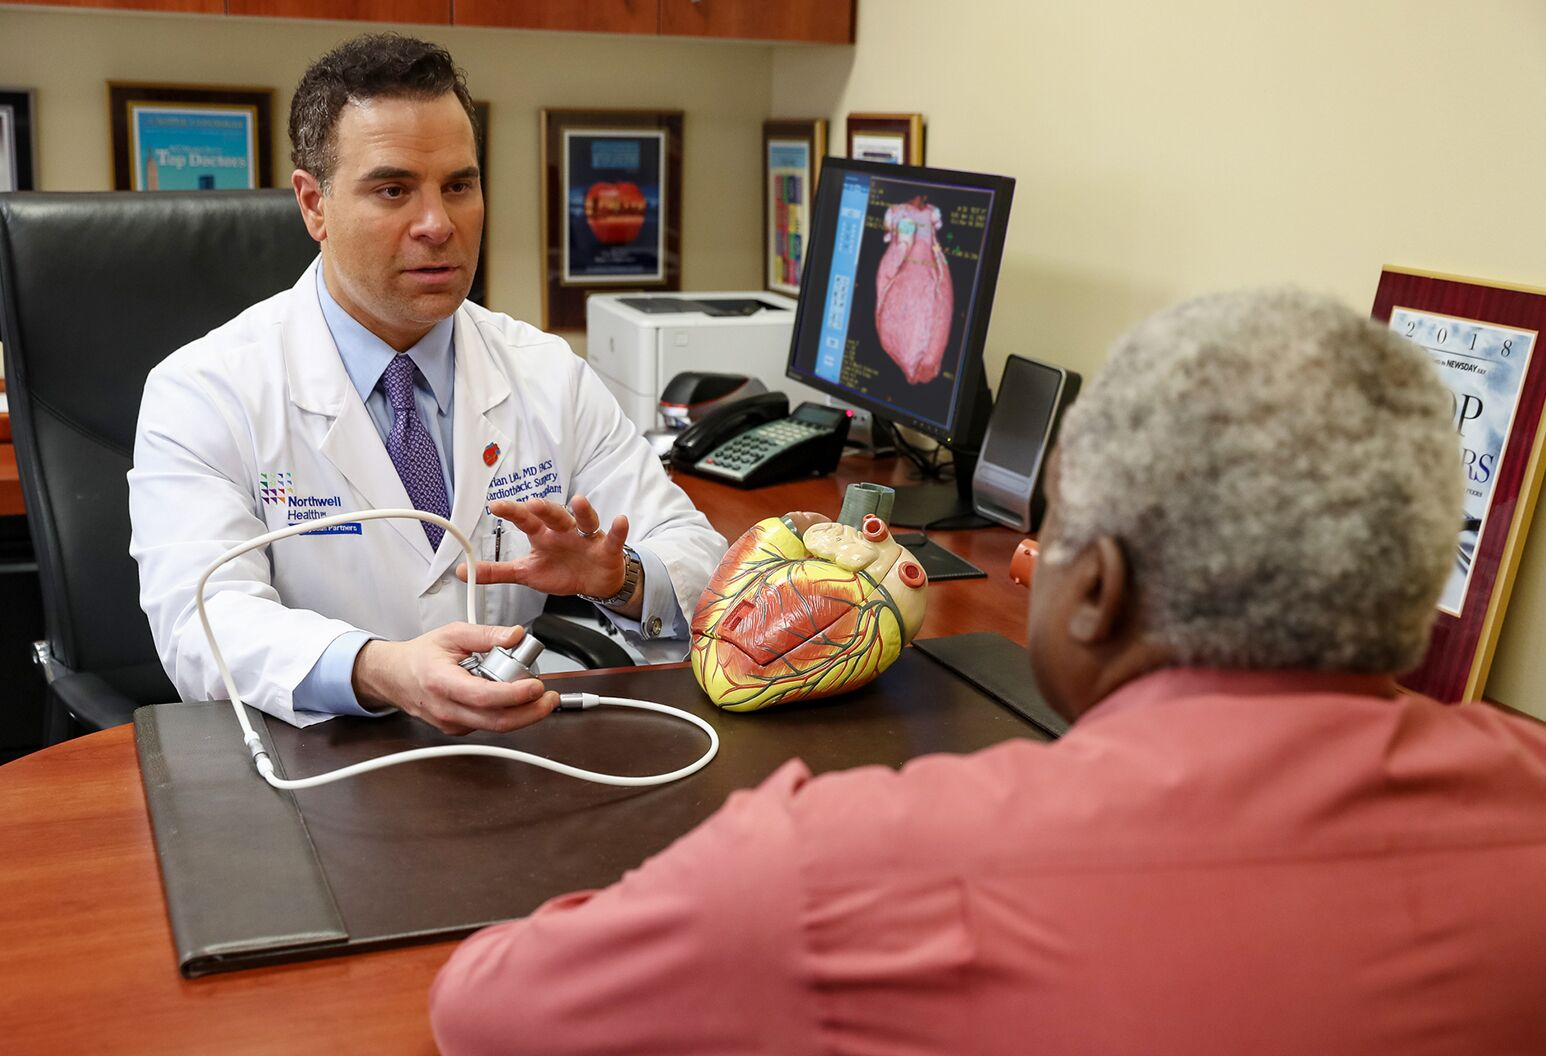 Cardiothoracic surgeon Dr. Lima uses a model heart to show an older male patient how the VAD works